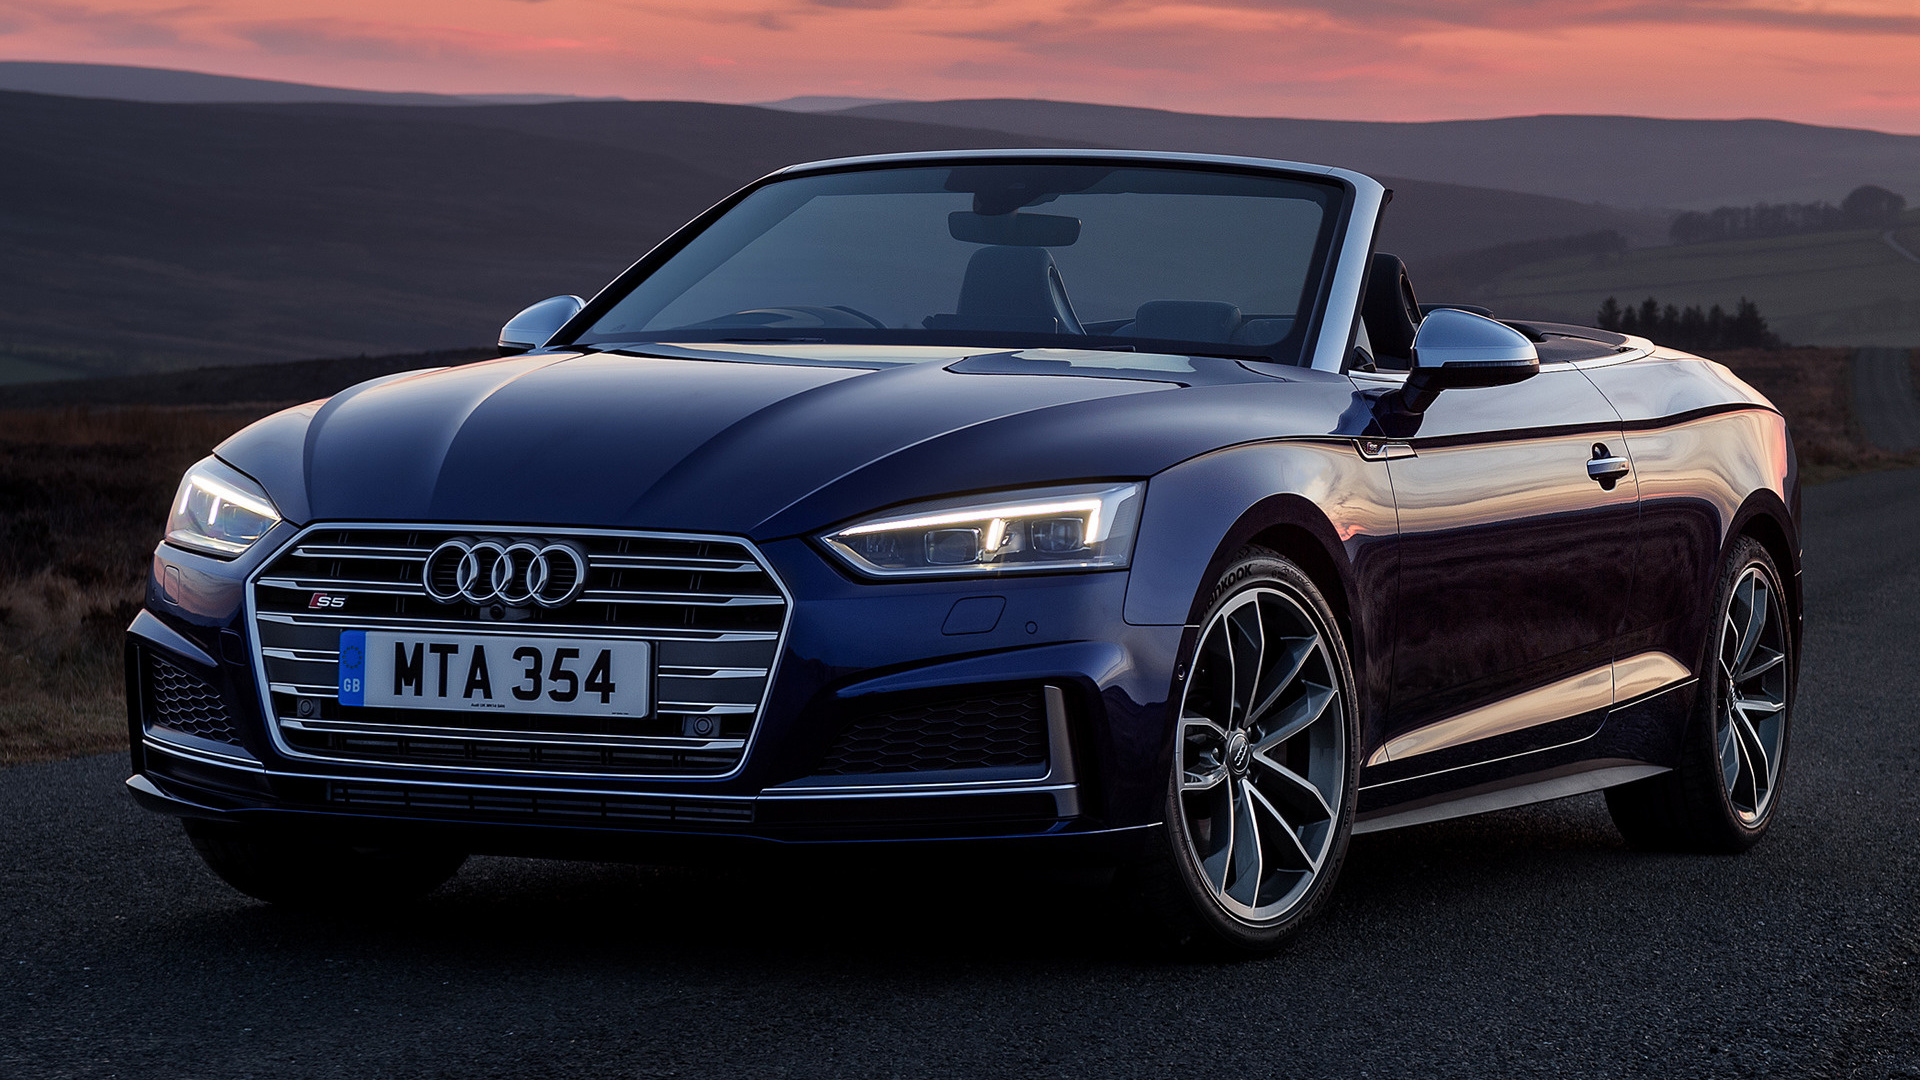 Audi S5 Cabriolet (2017) UK Wallpapers and HD Images - Car ...